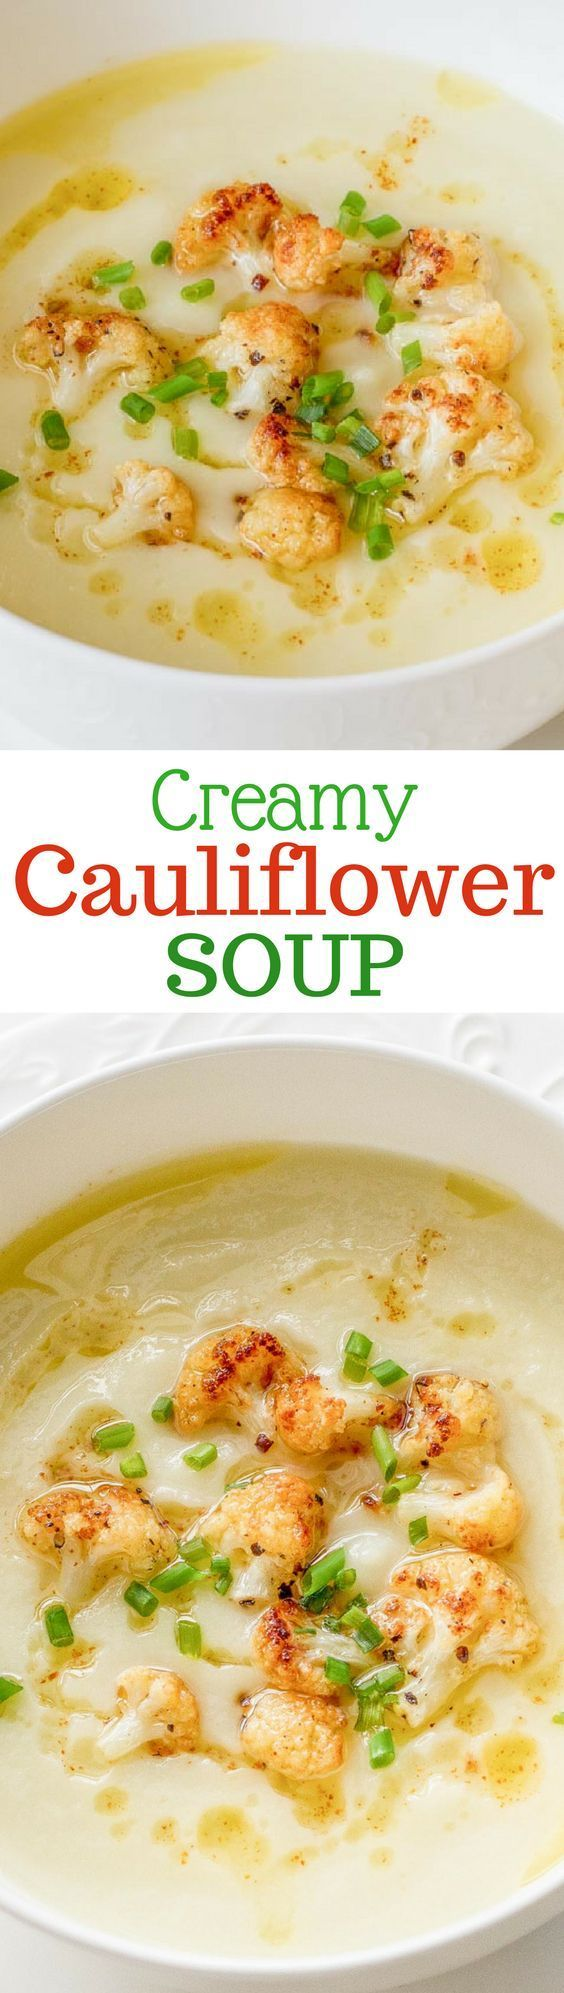 Creamy Cauliflower Soup ~ this soup is anything but boring! Deliciously fresh, healthy, creamy and satisfying ~ from http://www.savingdessert.com